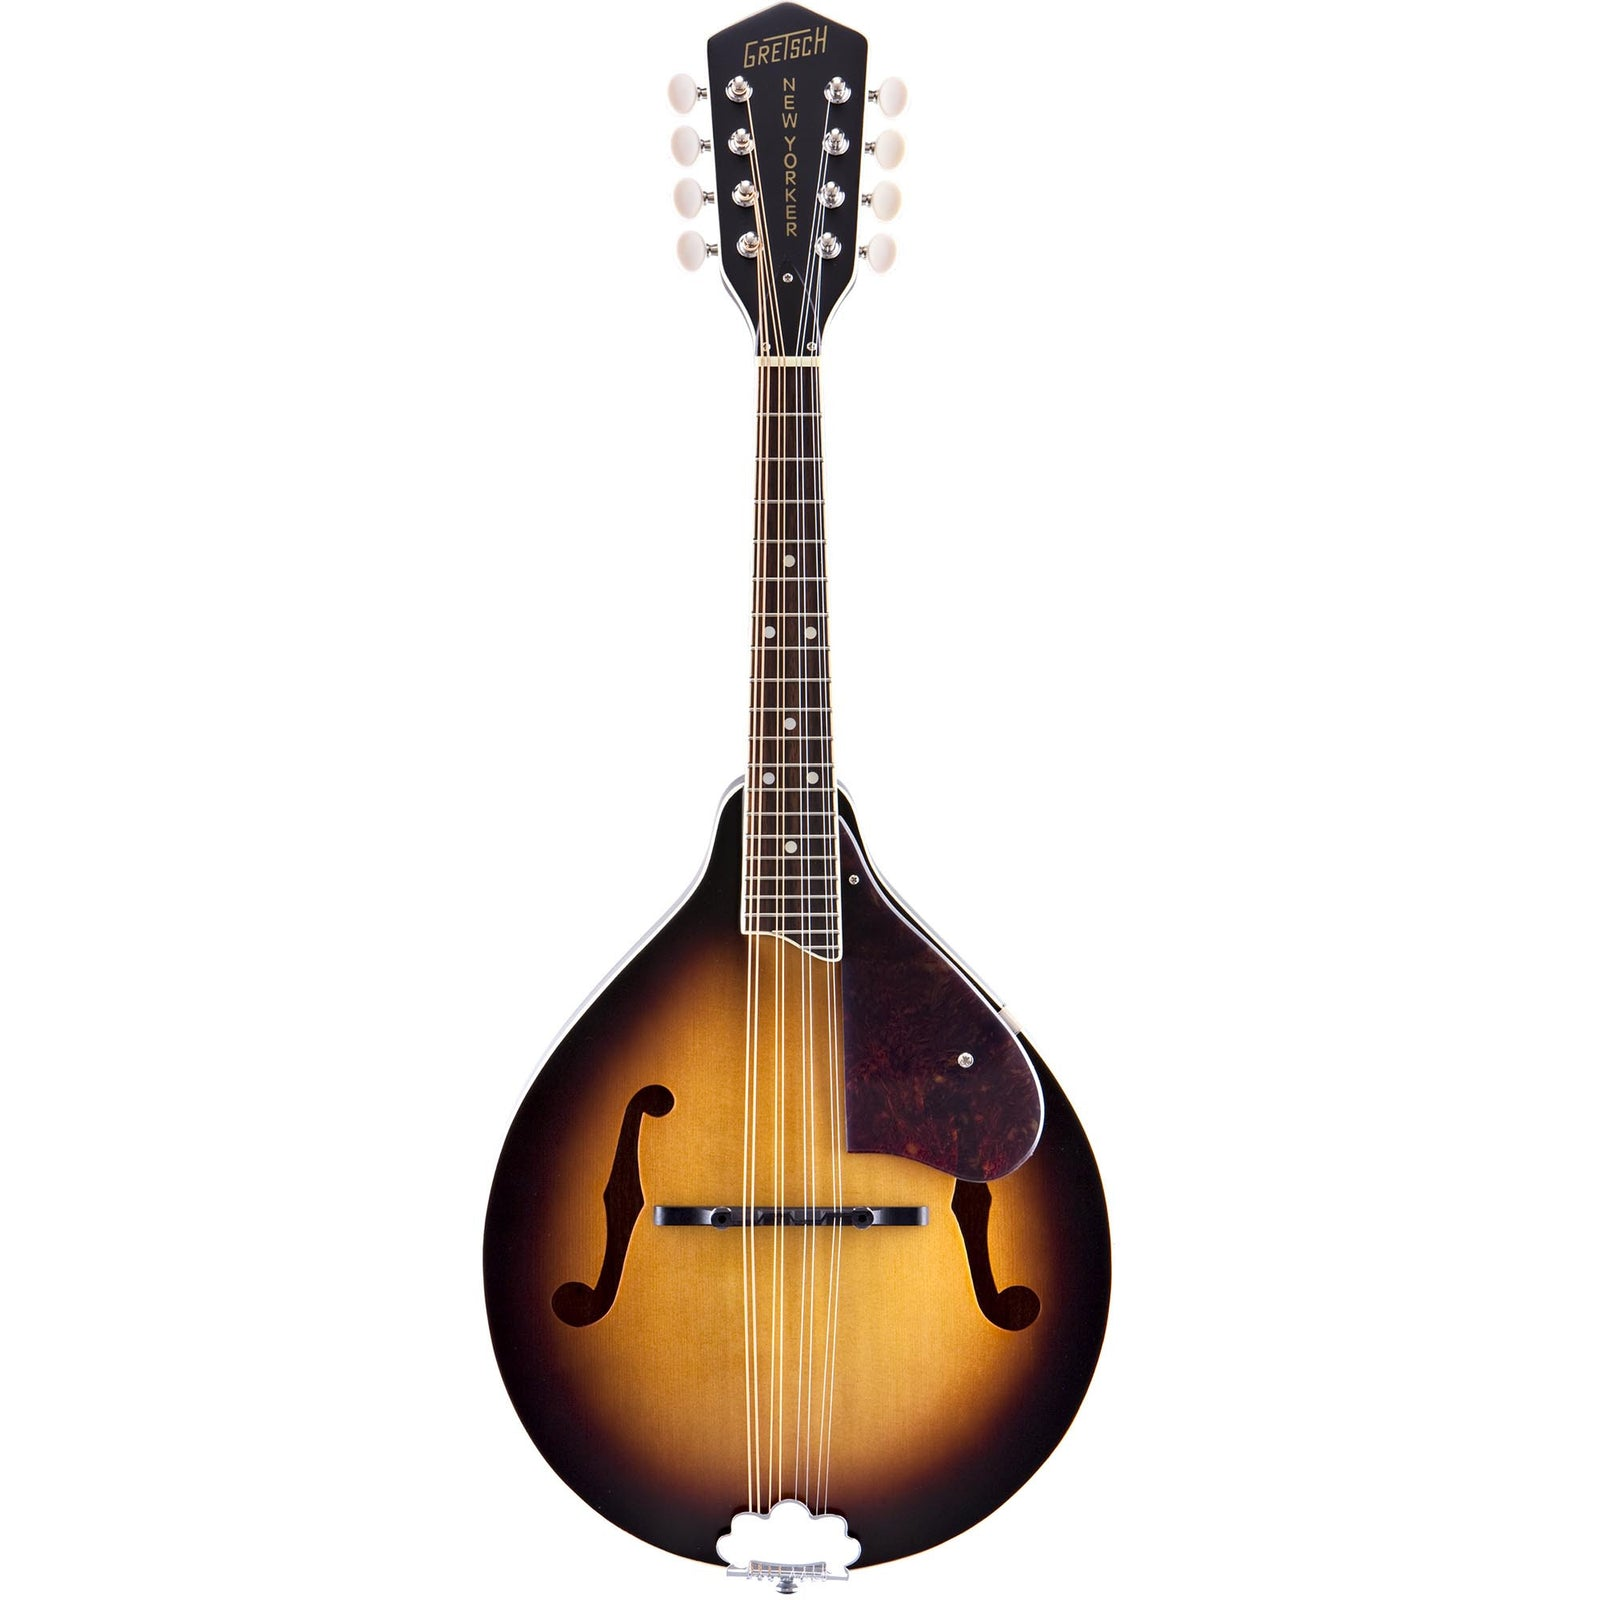 Gretsch G9300 New Yorker Standard Mandolin - 2-Color Sunburst - Image: 2